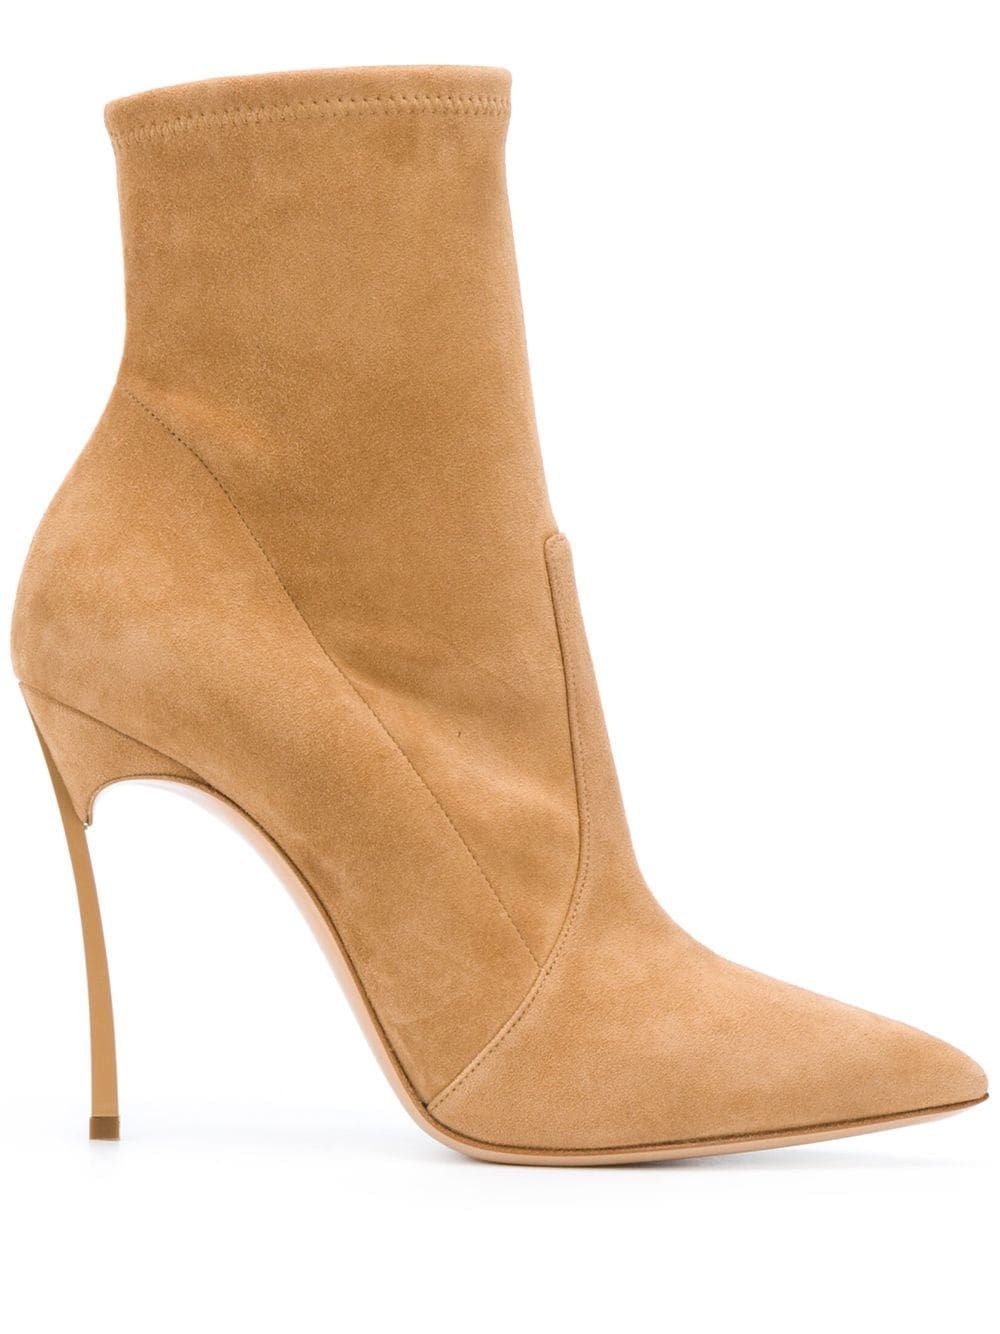 Suede leather heel ankle boots